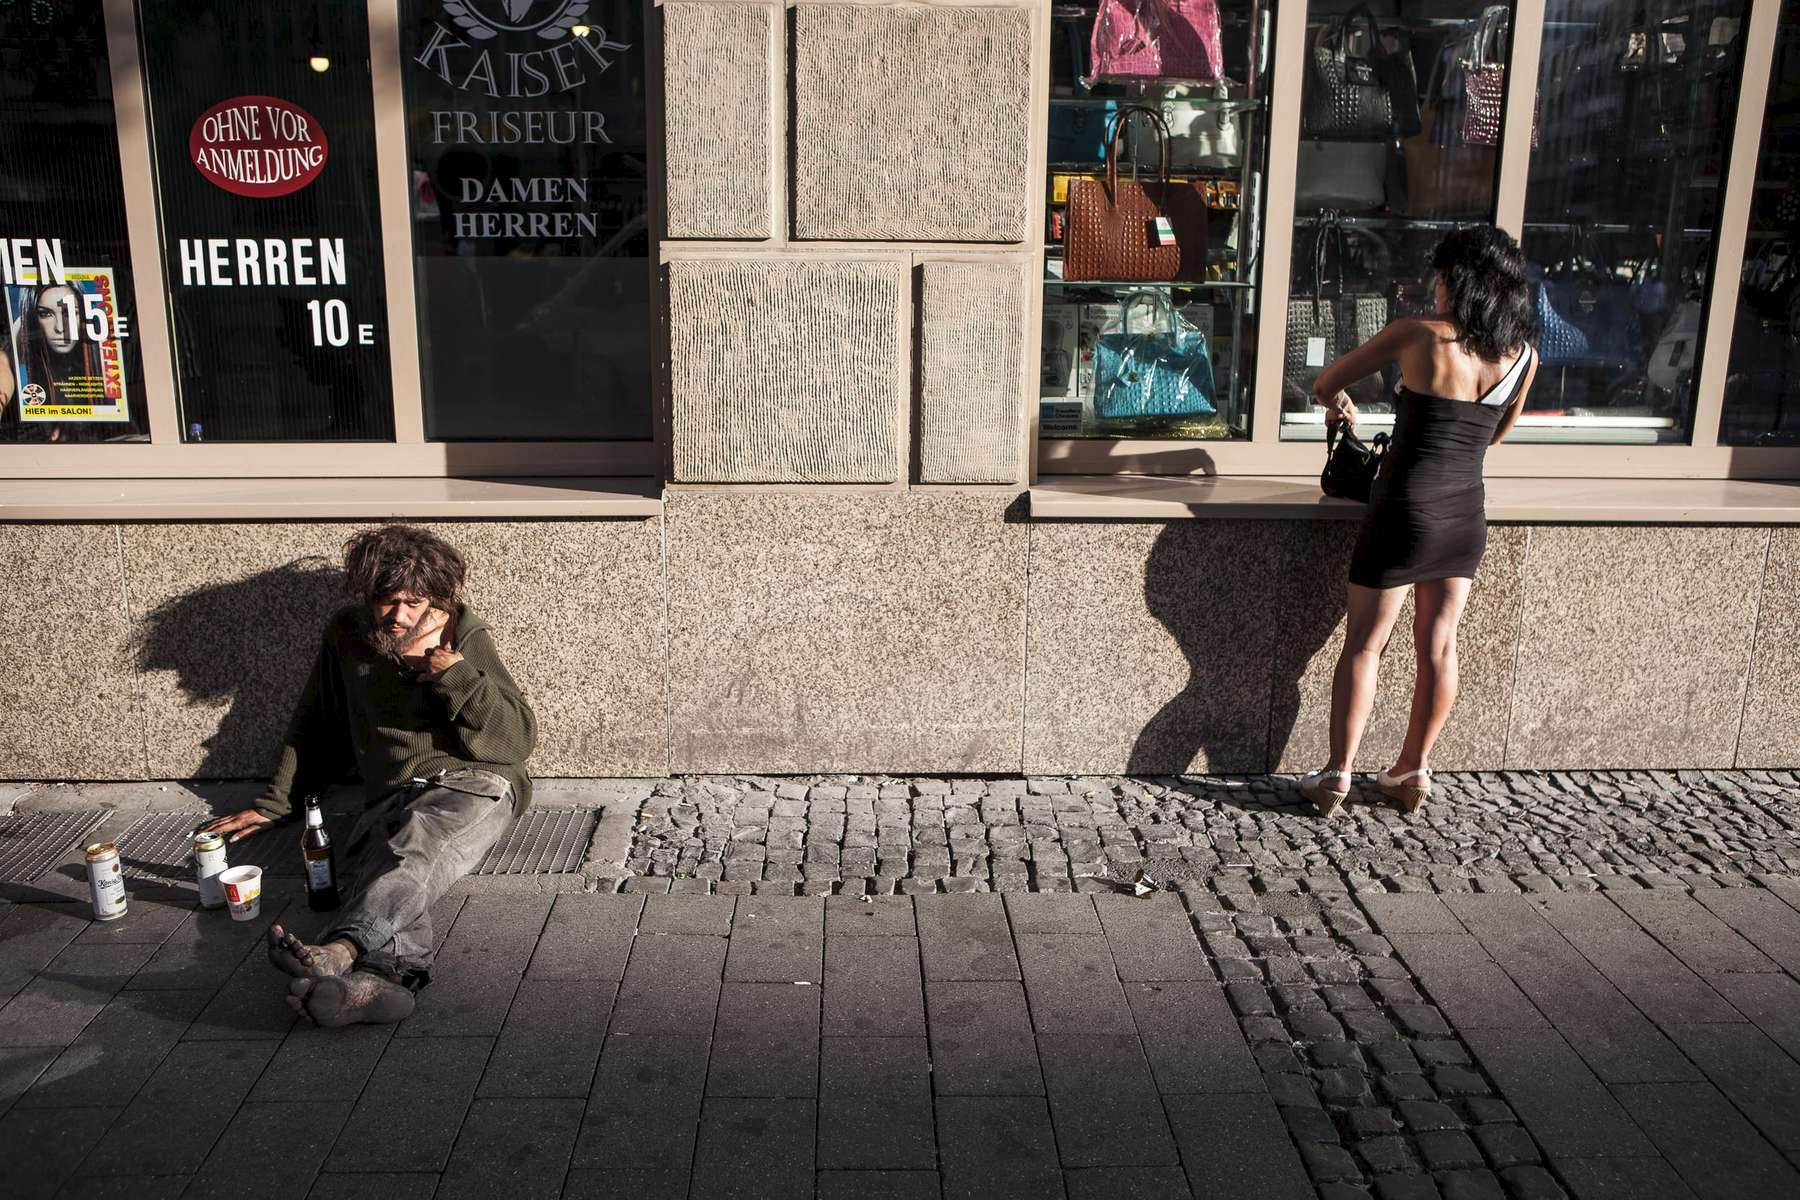 homeless man sitting in front of shop windows while a woman is seen searching her bag close to Bahnhofsviertel in Frankfurt am Main in Germany